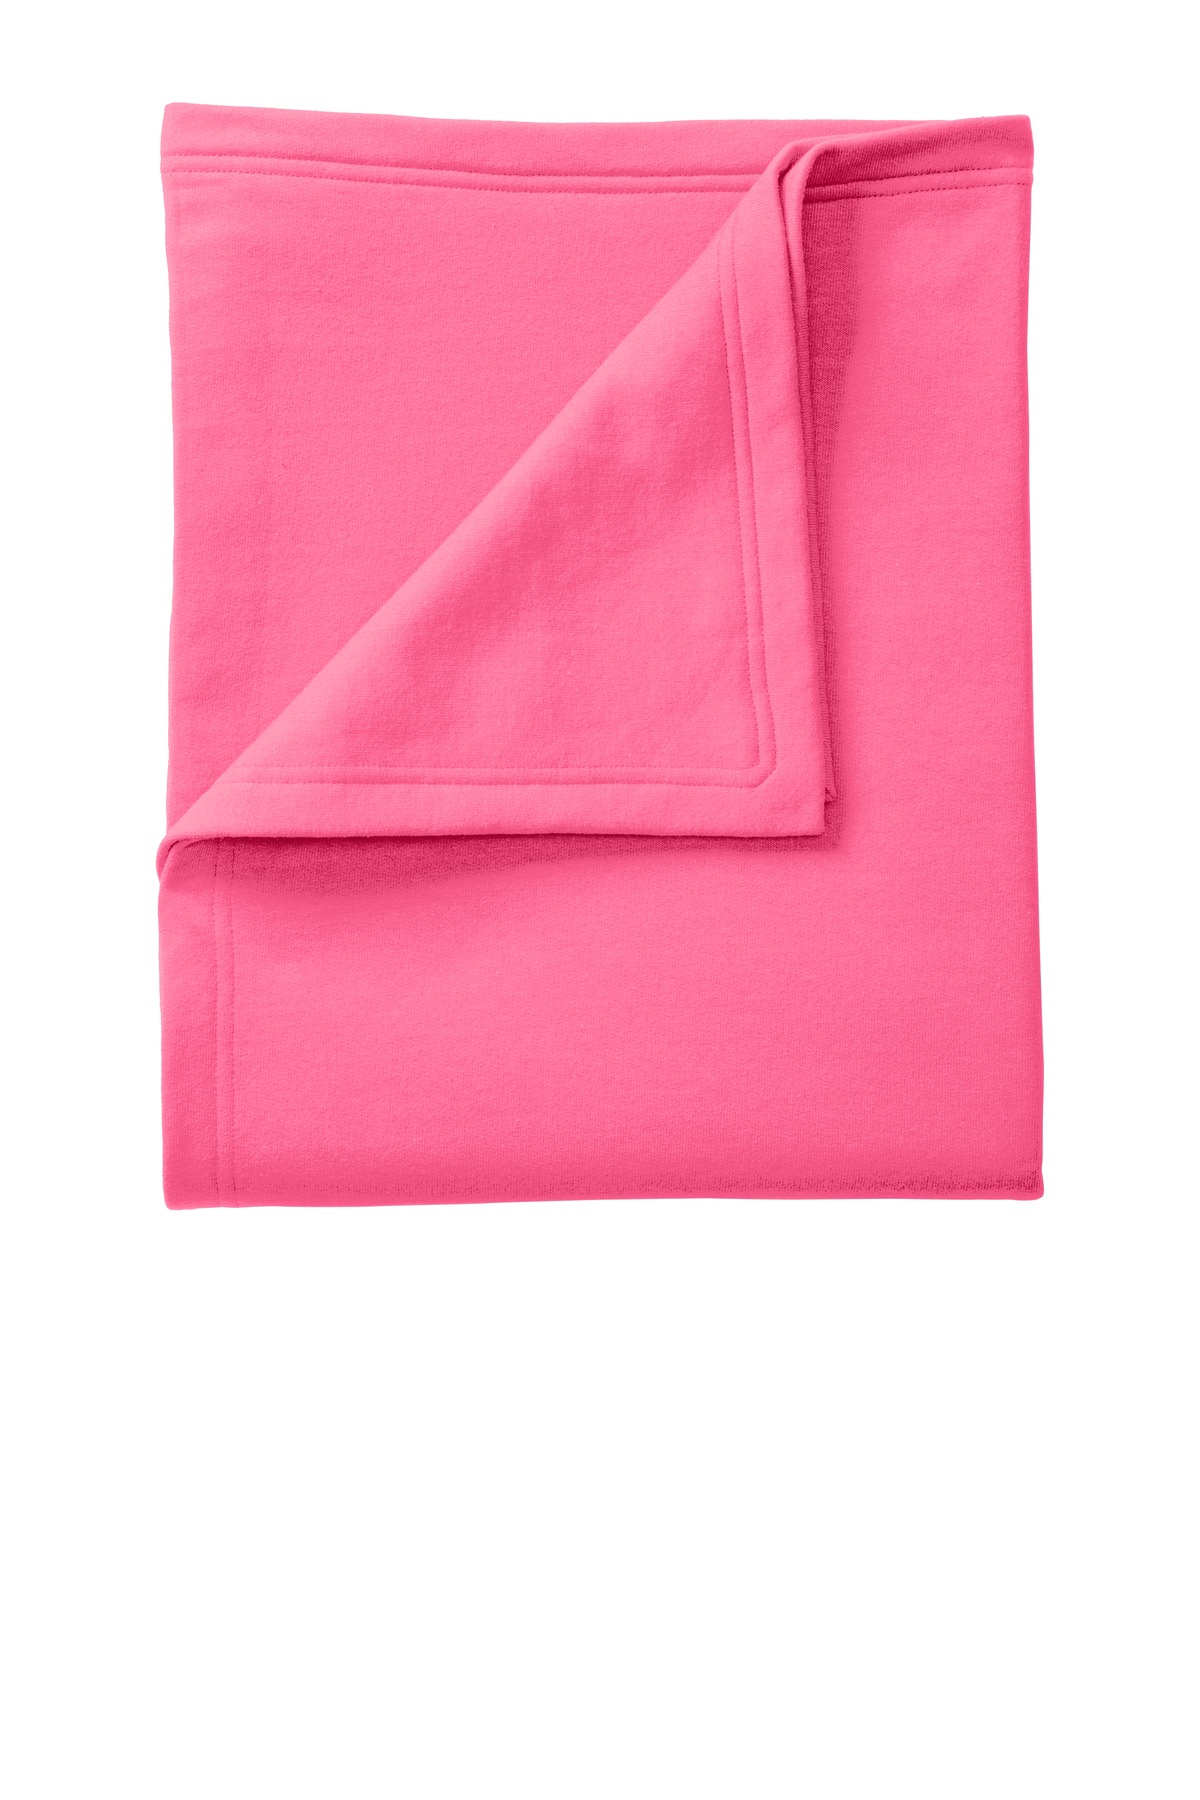 Port & Company ®  Core Fleece Sweatshirt Blanket. BP78 - Neon Pink